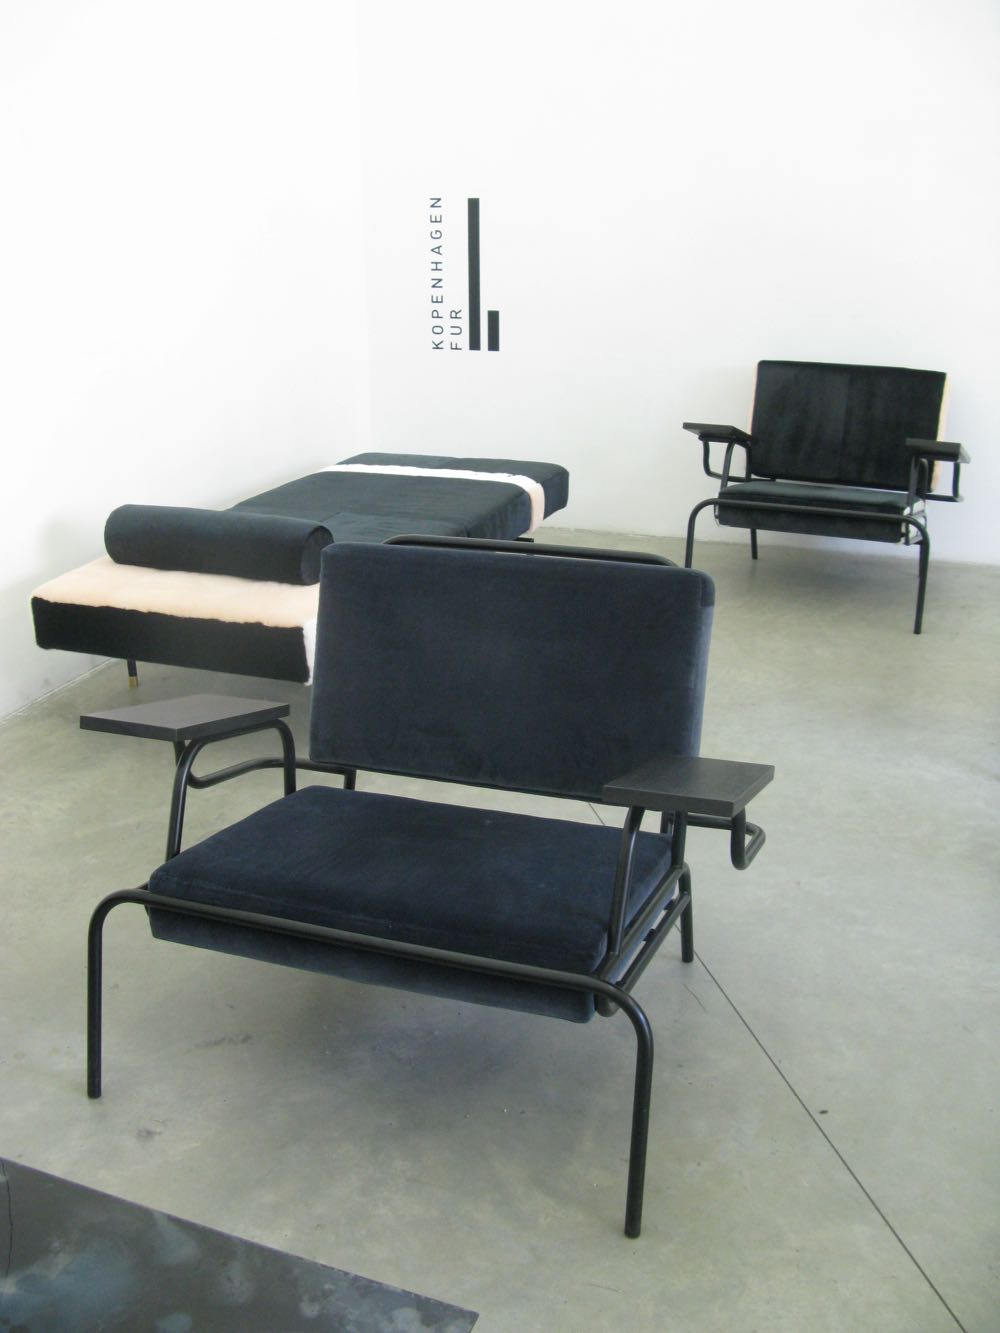 Amanda Lilholt's Han chairs and daybed at Ventura Lambrate.